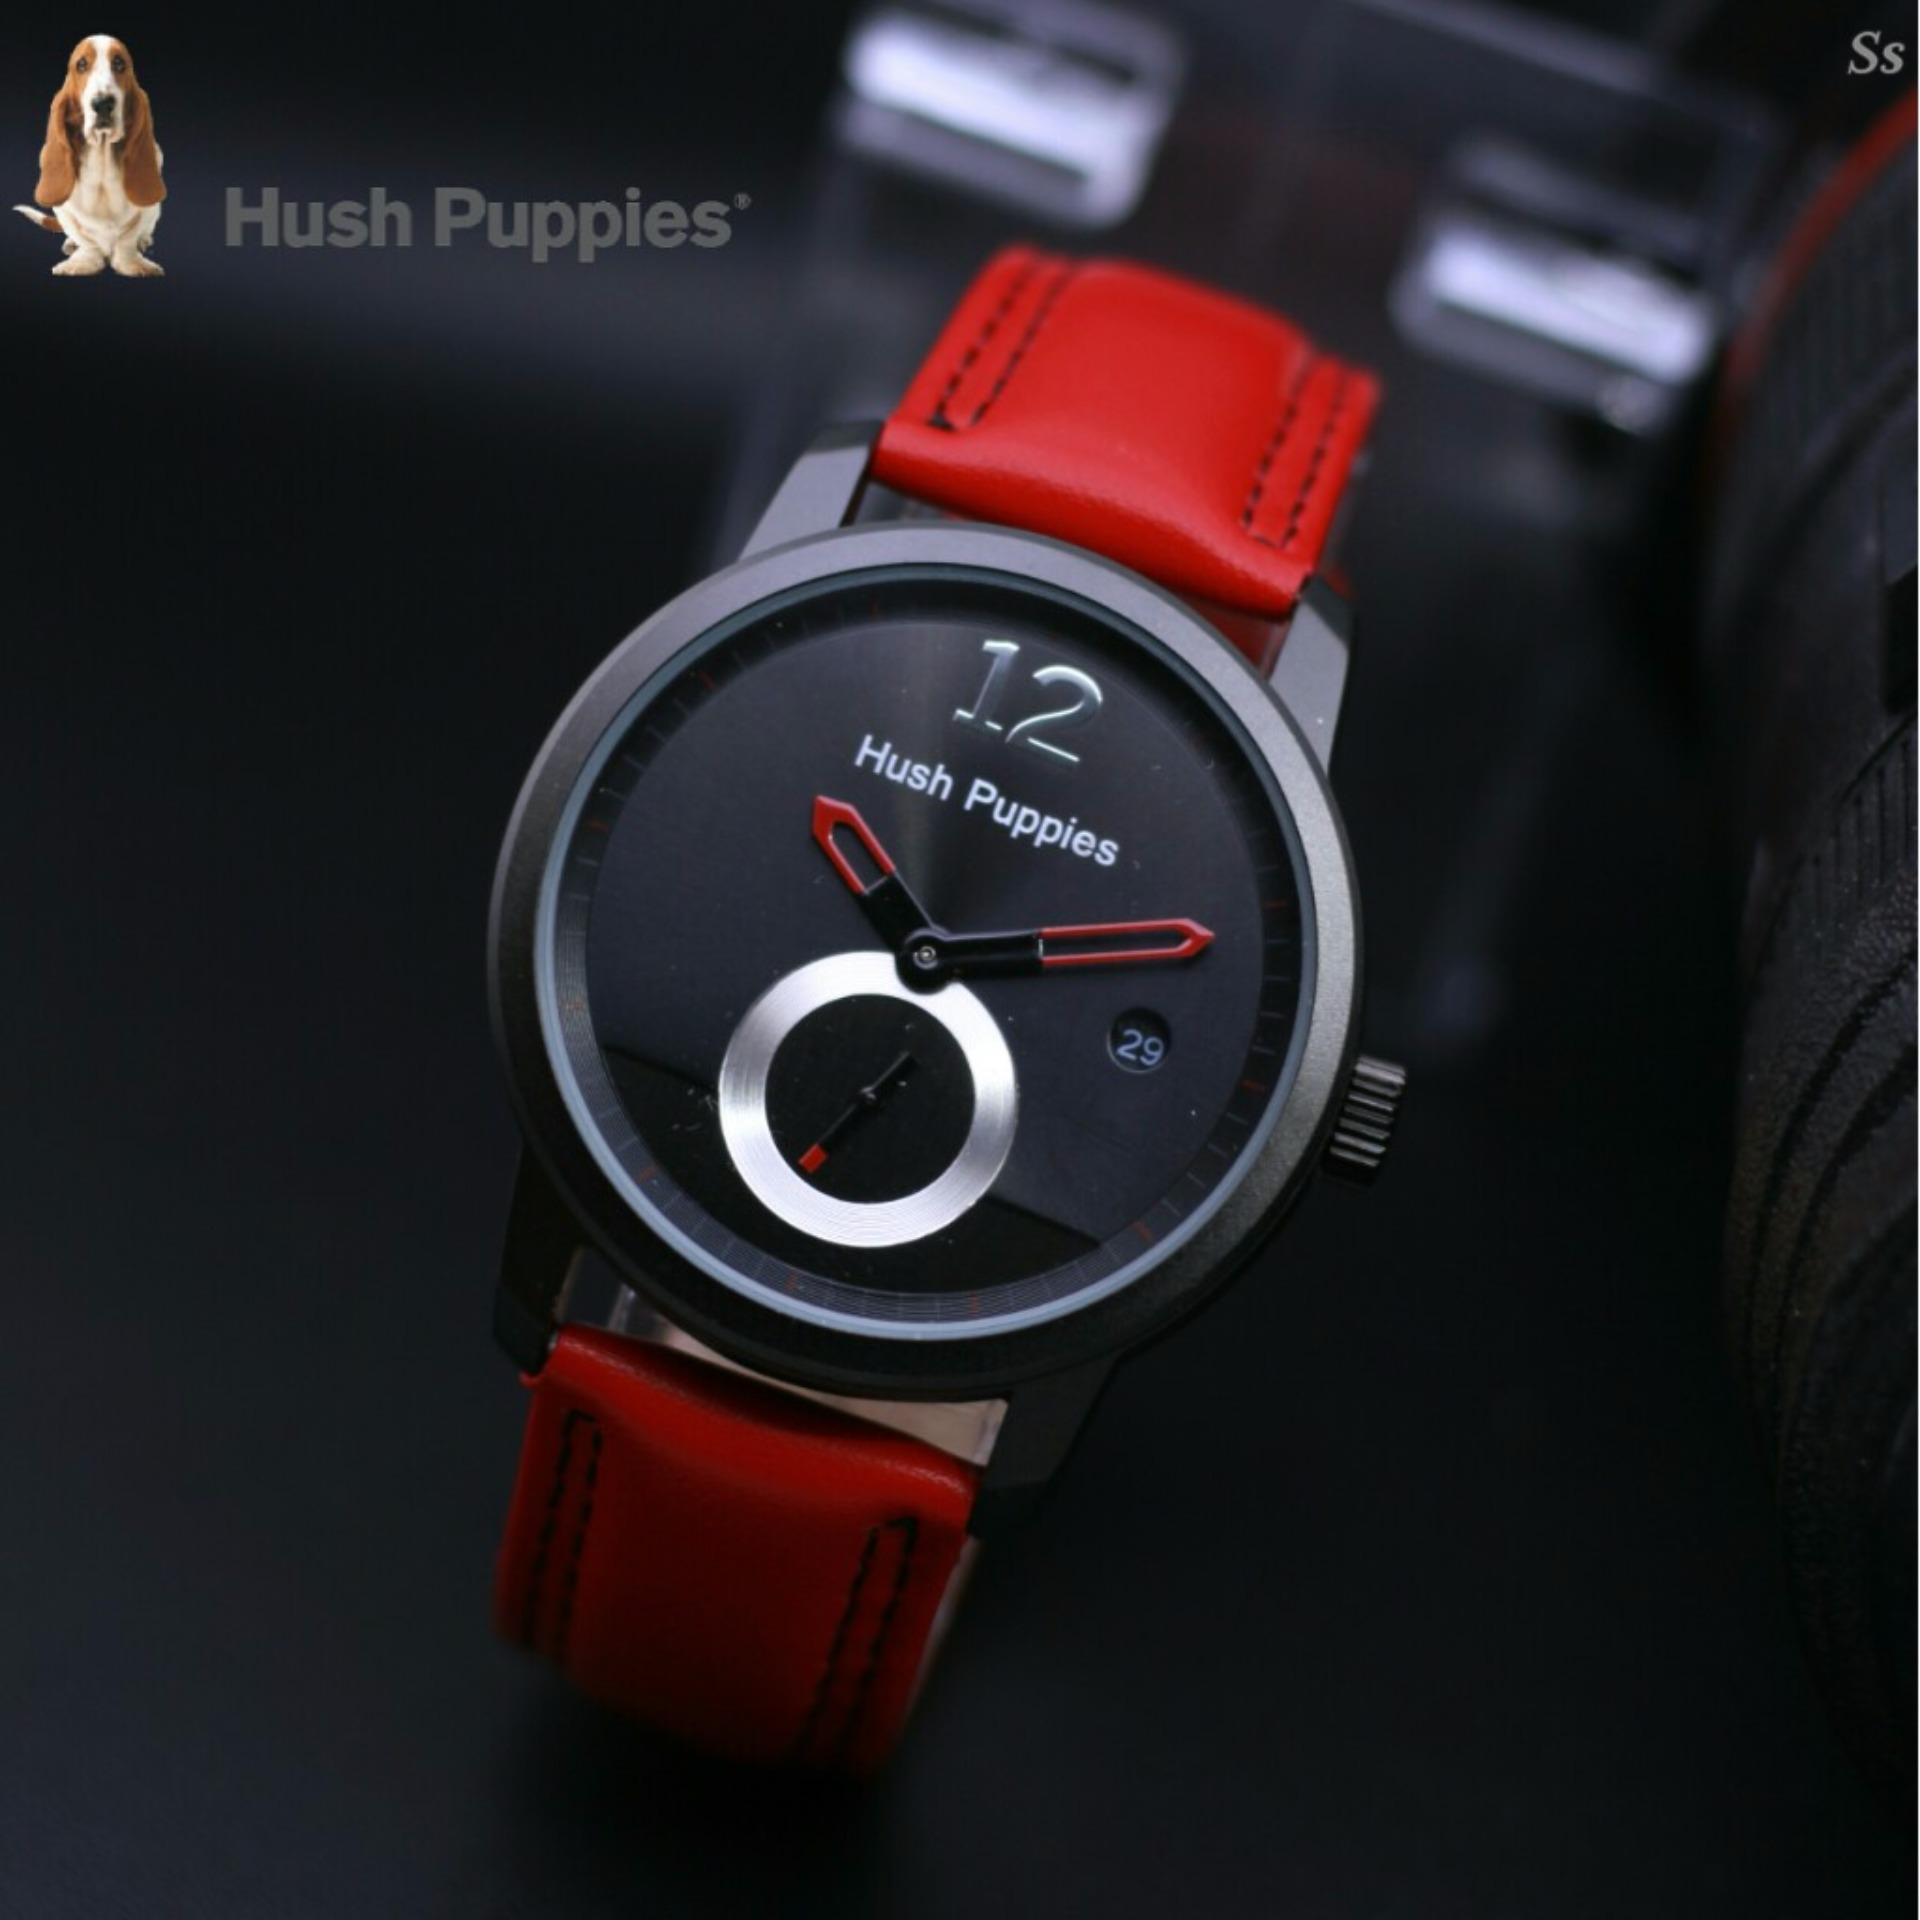 Swiss Army Jam Tangan Pria Body Black Black Red Dial SA. Source ... Jam Tangan Pria/Wanita H'ush Pupies Red leather strap .